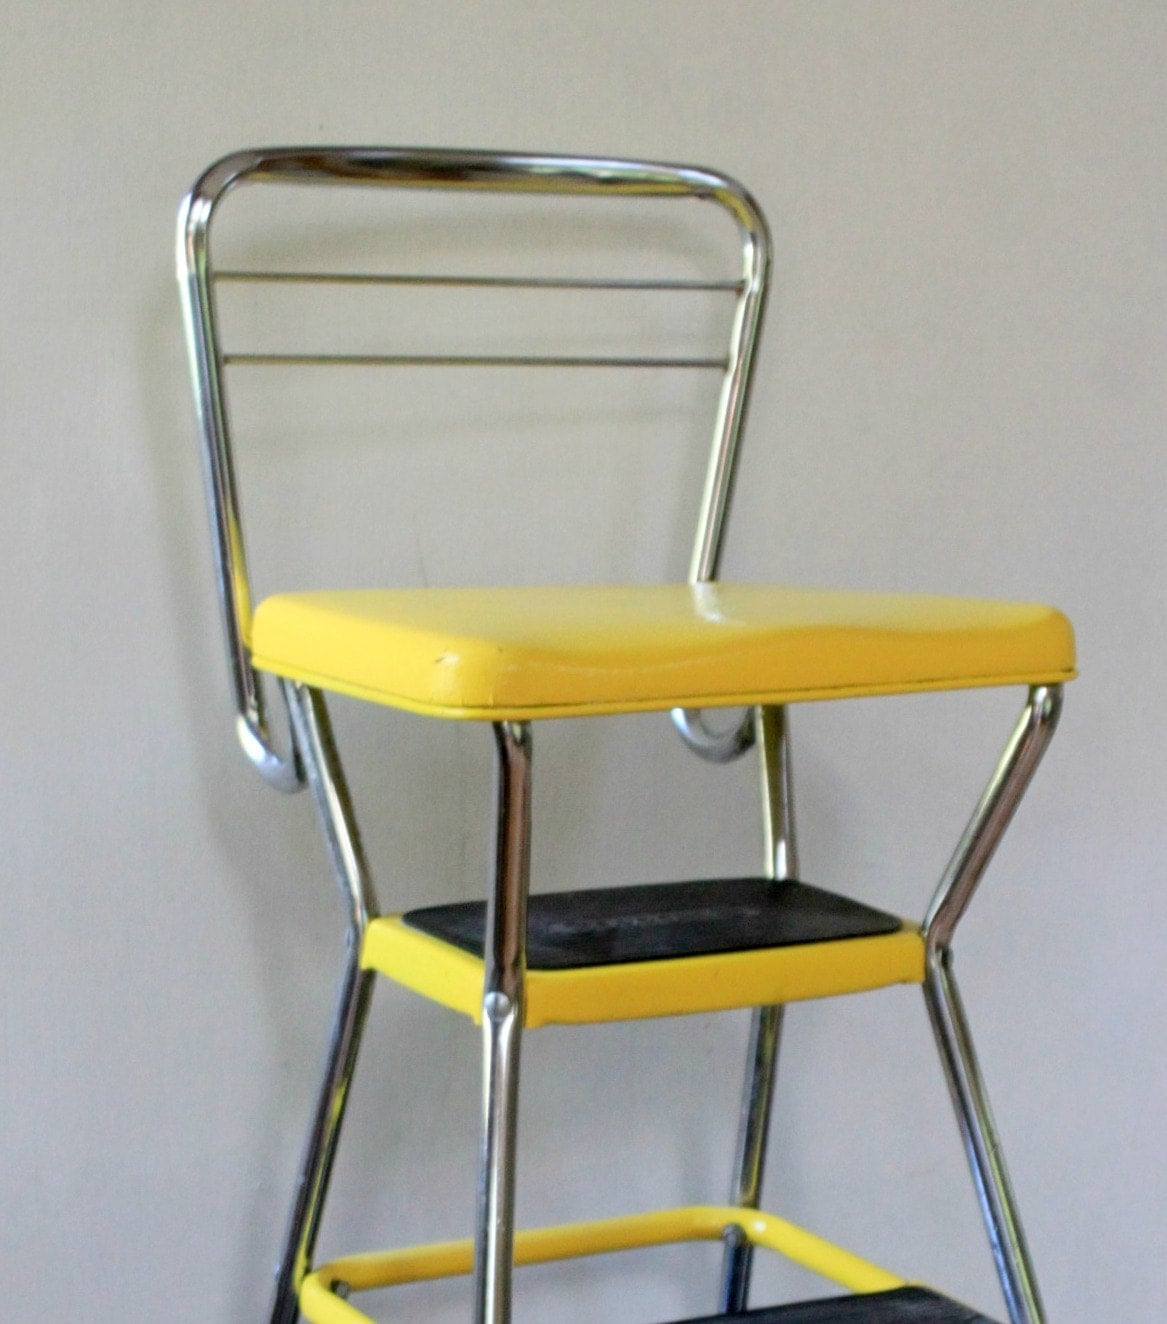 vintage yellow cosco step stool chair by mygrandfathersattic. Black Bedroom Furniture Sets. Home Design Ideas